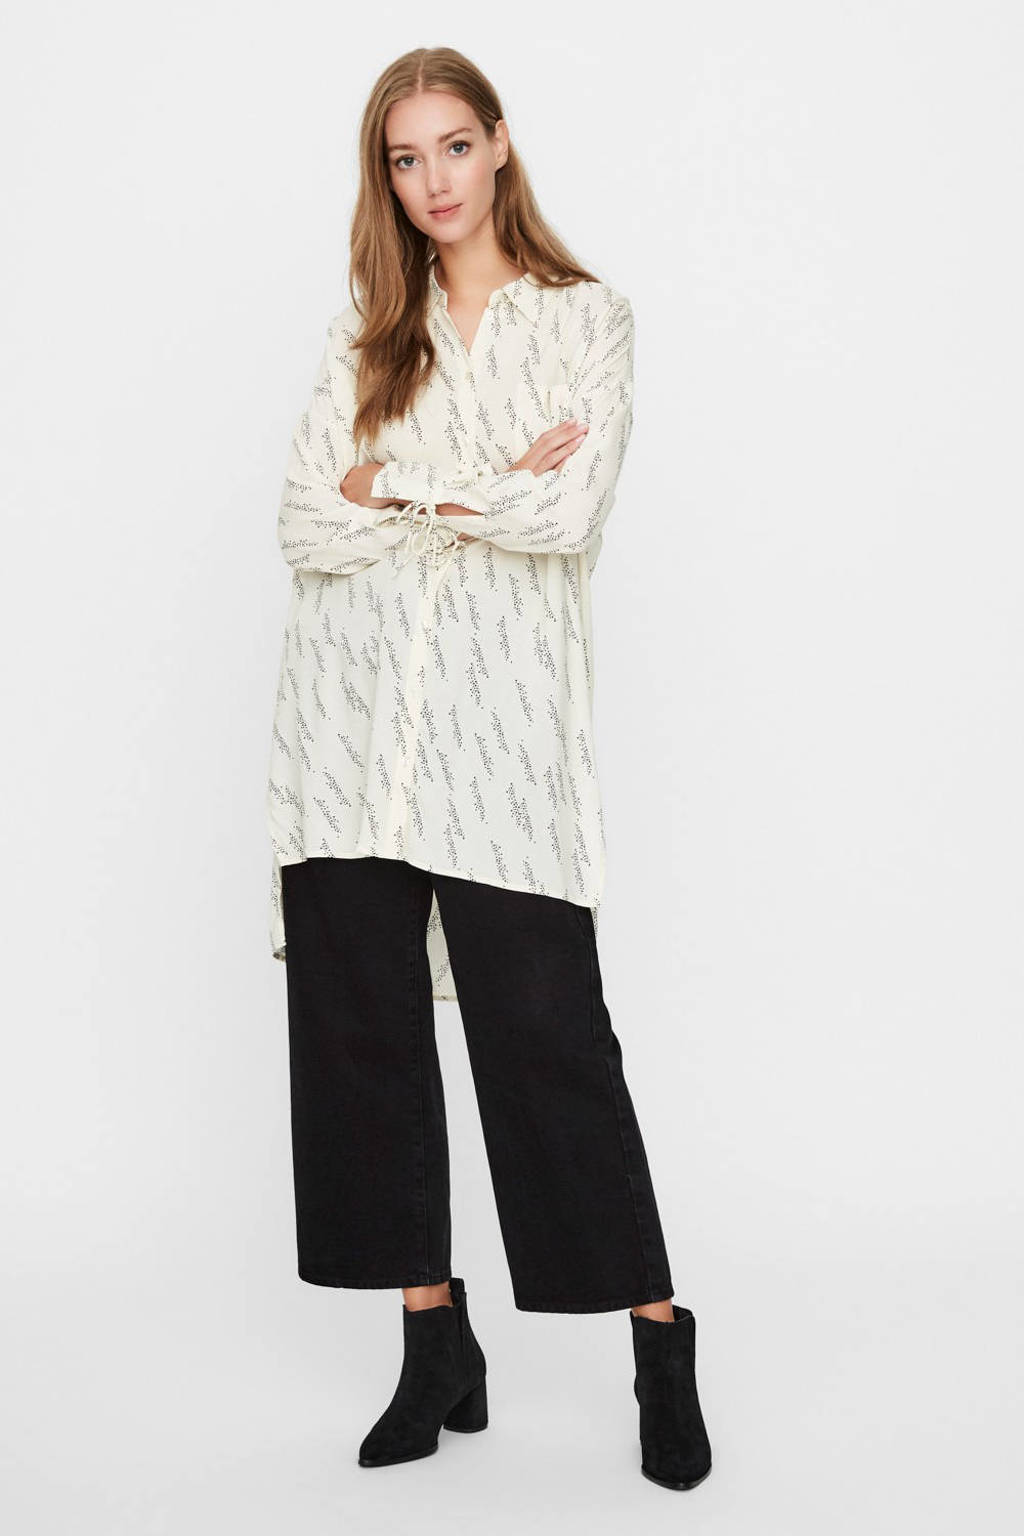 VERO MODA blouse met all over print wit, Wit